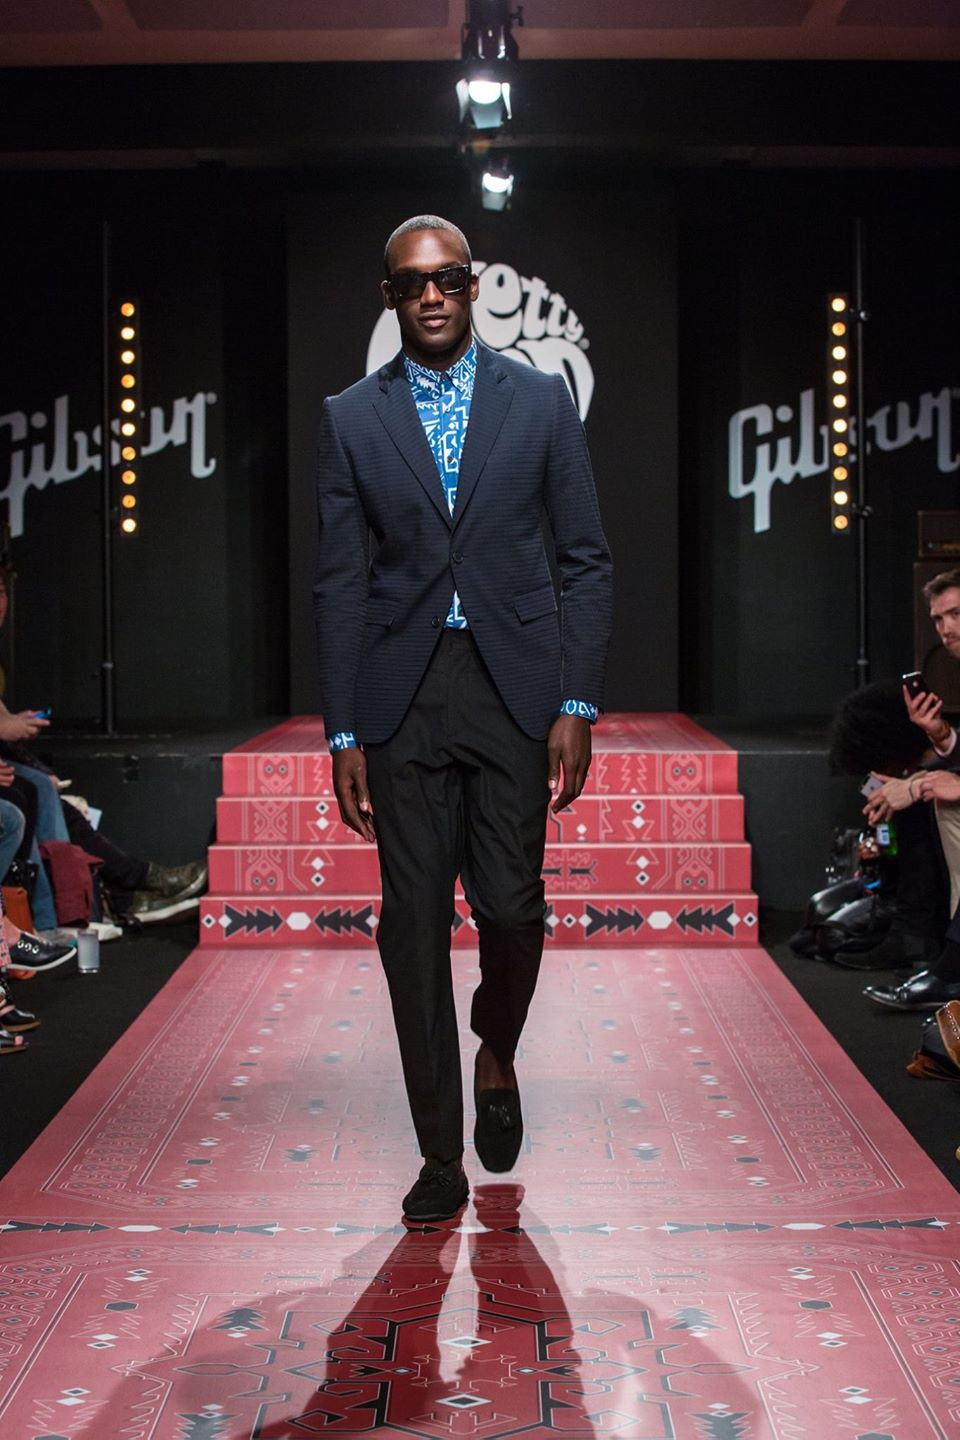 on Monday 16th of June we produced and casted the show for Pretty Green's Spring/ Summer 2015 collection to the press and buyers at London Collections: Men. The event took place at the famous Gibson Brand studio, the private HQ where artists such as Paul Weller, Miles Kane and primal scream plan their tours. The models took to the catwalk with a sound track of rock and roll to debut the collection entitled 'The Production' designed by Pat Salter and inspired by a visit to the famous Abbey Road studios.